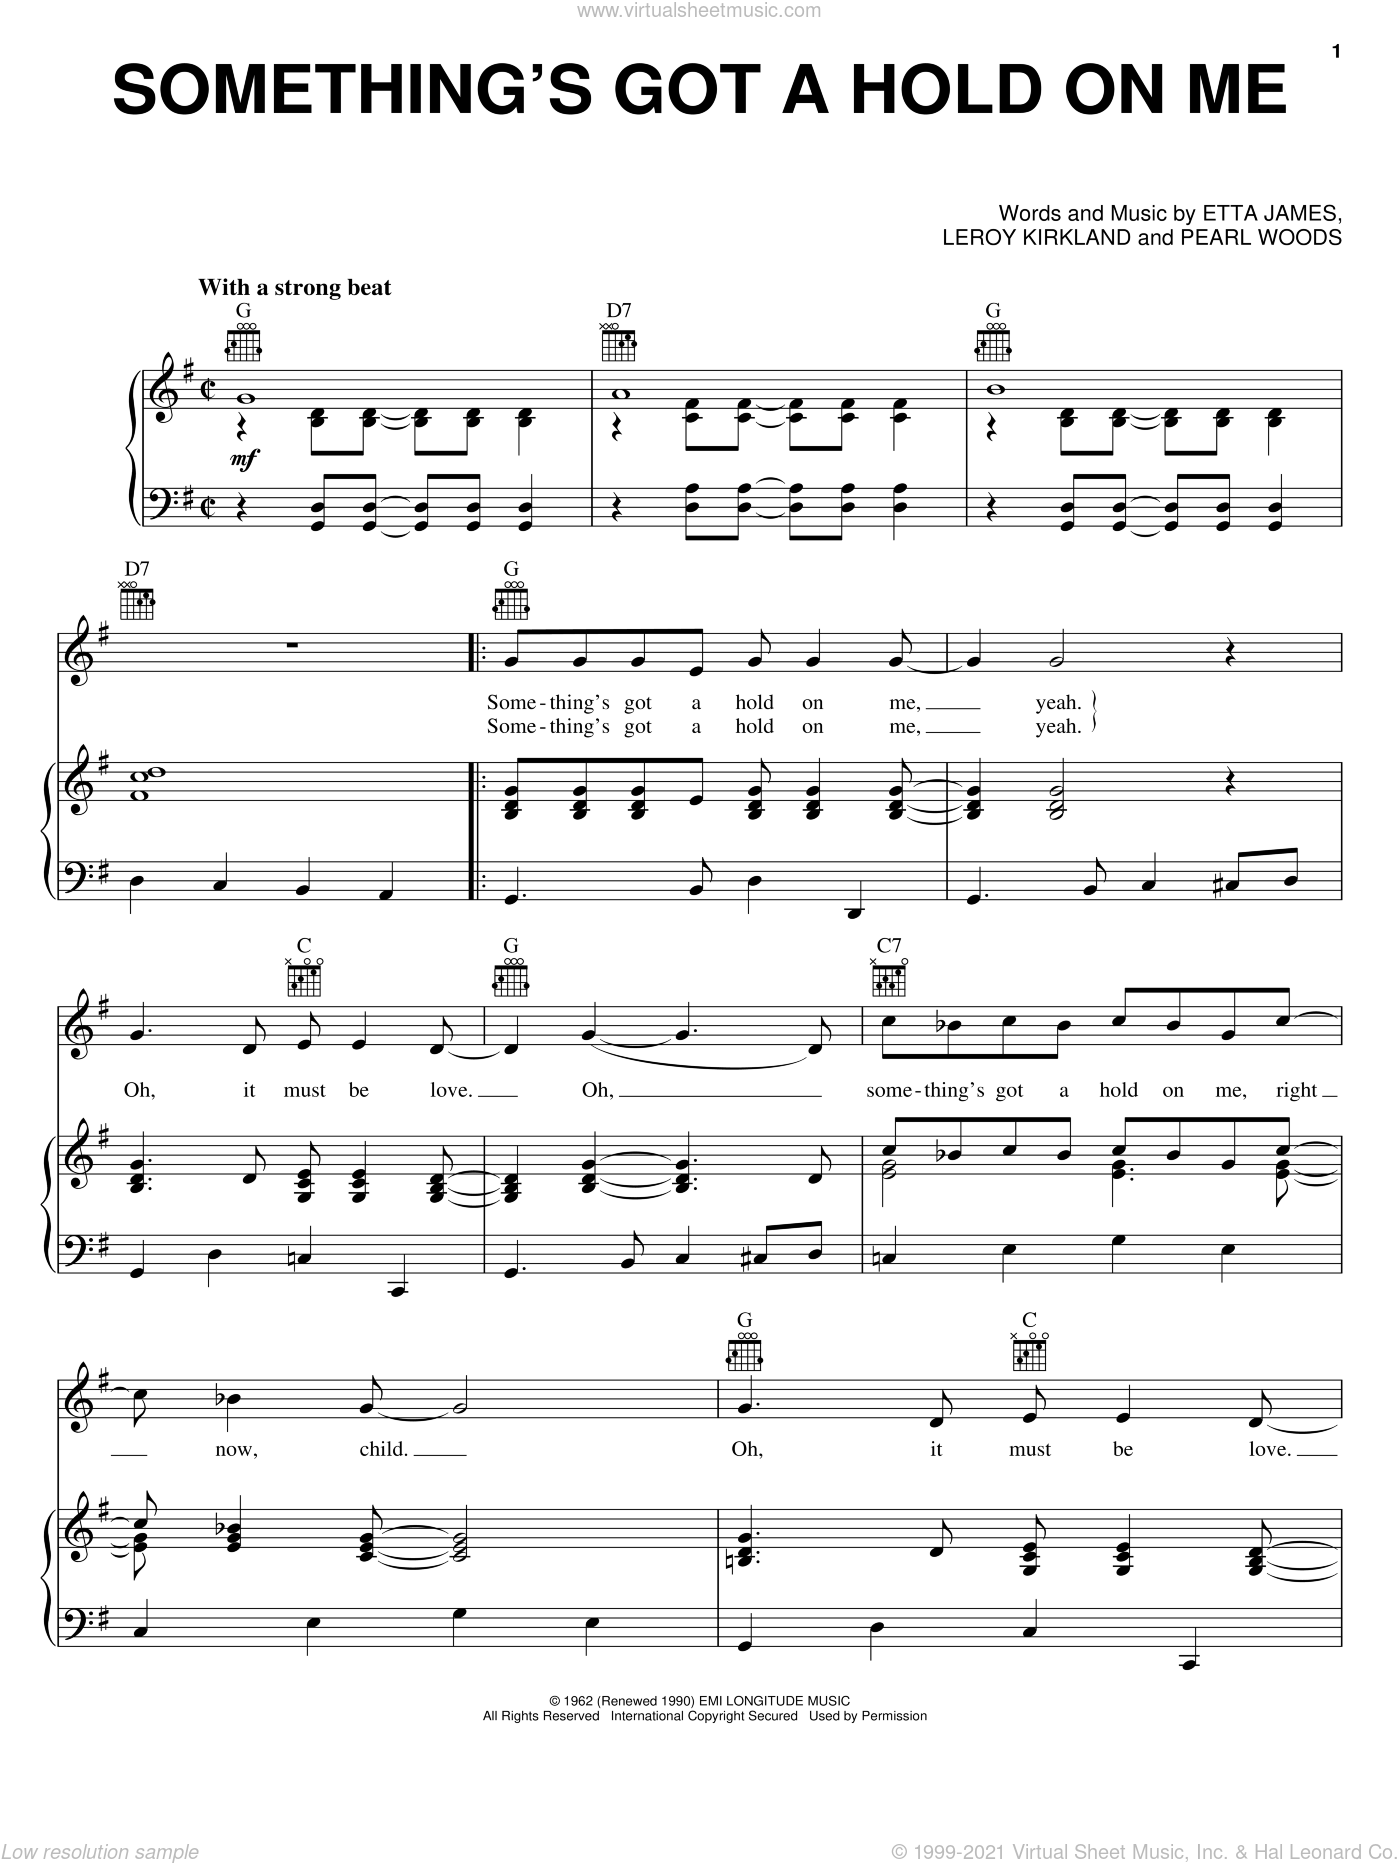 Something's Got A Hold On Me sheet music for voice, piano or guitar by Etta James, Leroy Kirkland and Pearl Woods, intermediate skill level